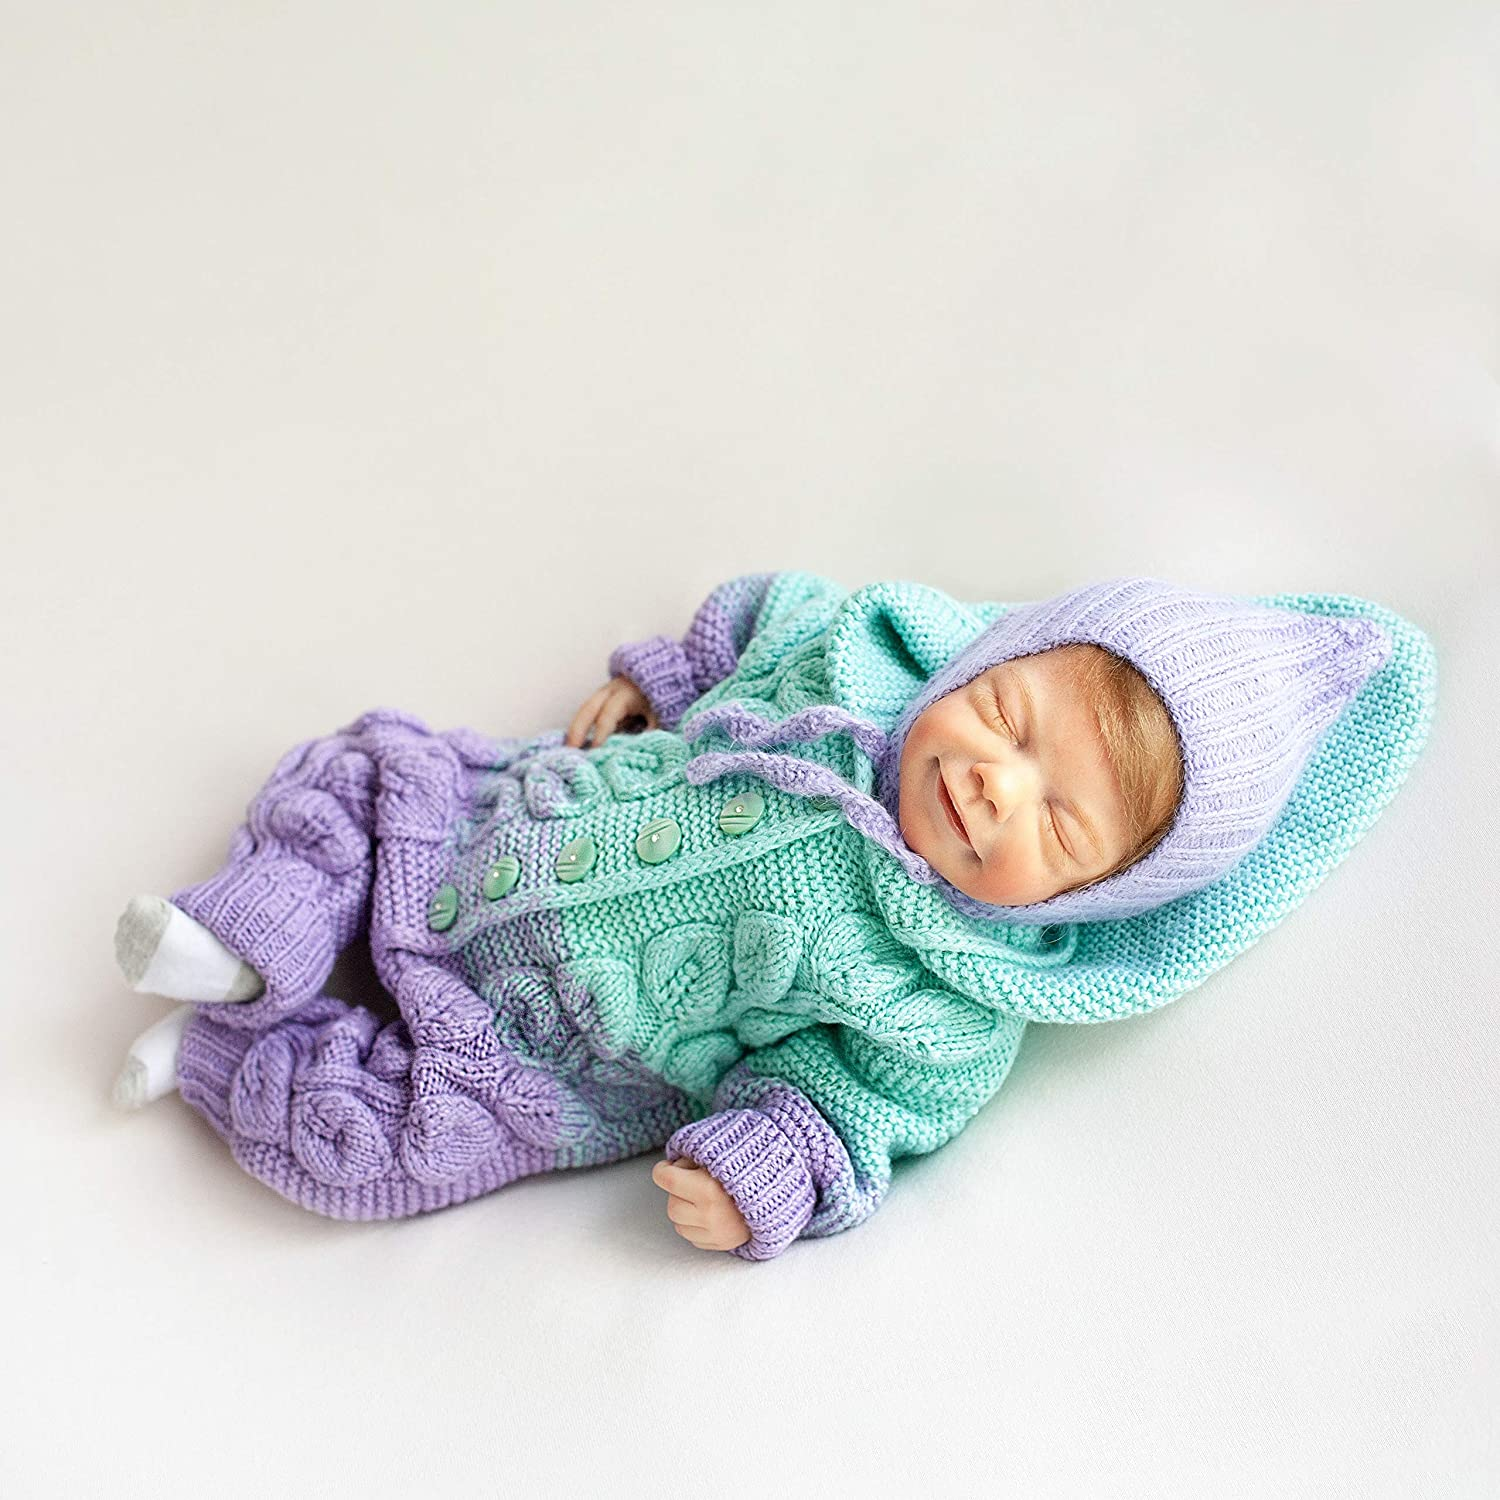 Amazon.com: Knitted baby clothes 5-5 mon Baby girl coming home